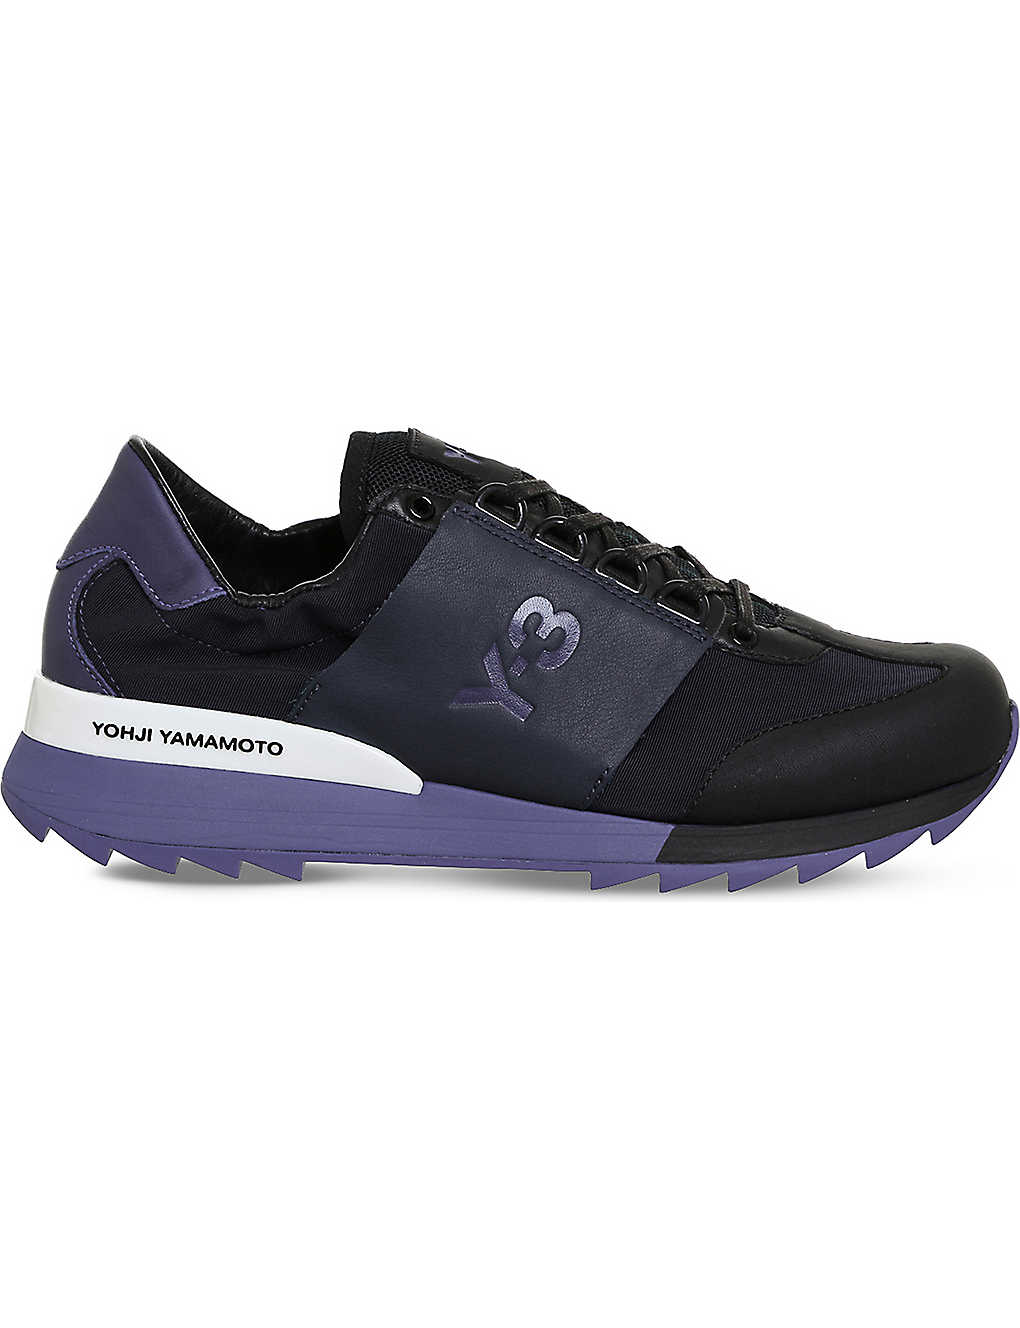 ba846a8695b2 ADIDAS Y3 - Rhita Sport leather and mesh trainers